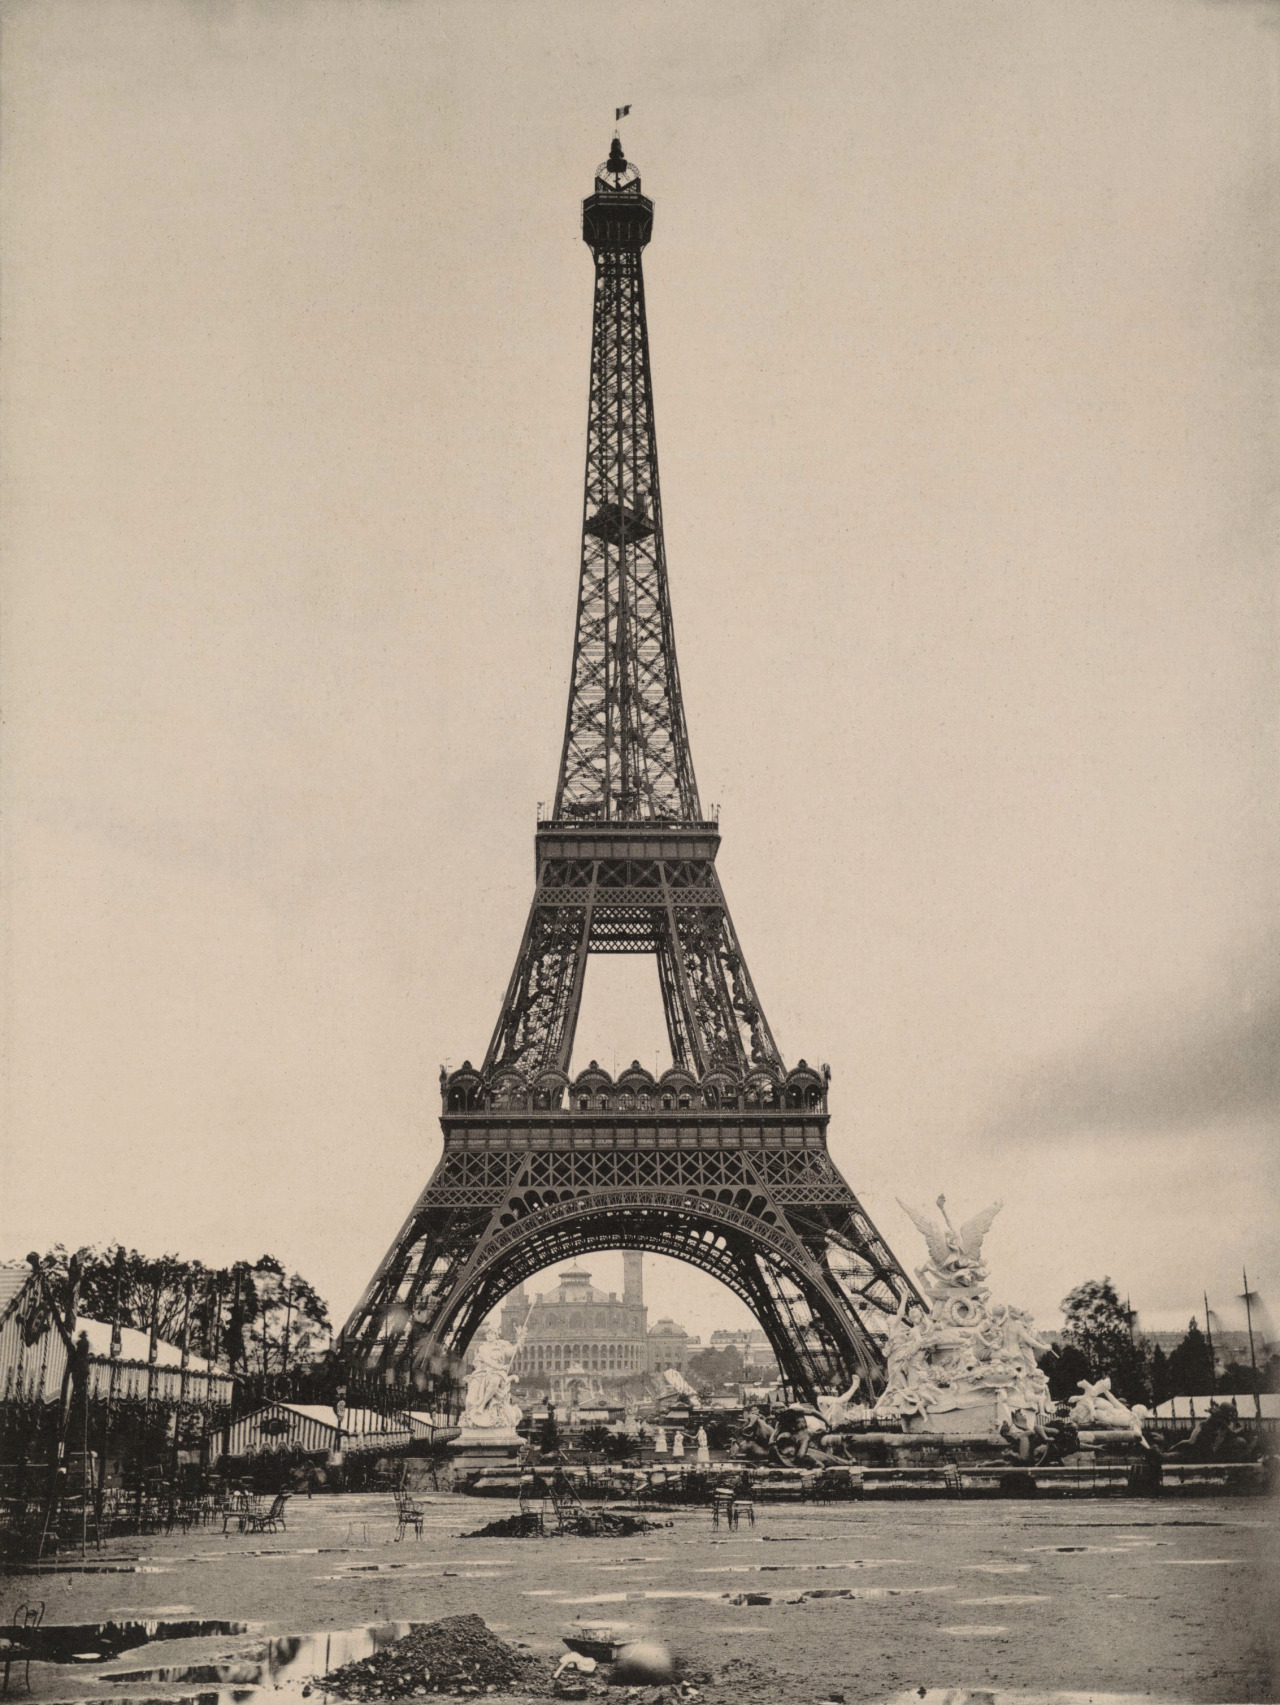 The Eiffel Tower during the 1889 World's Fair, Paris